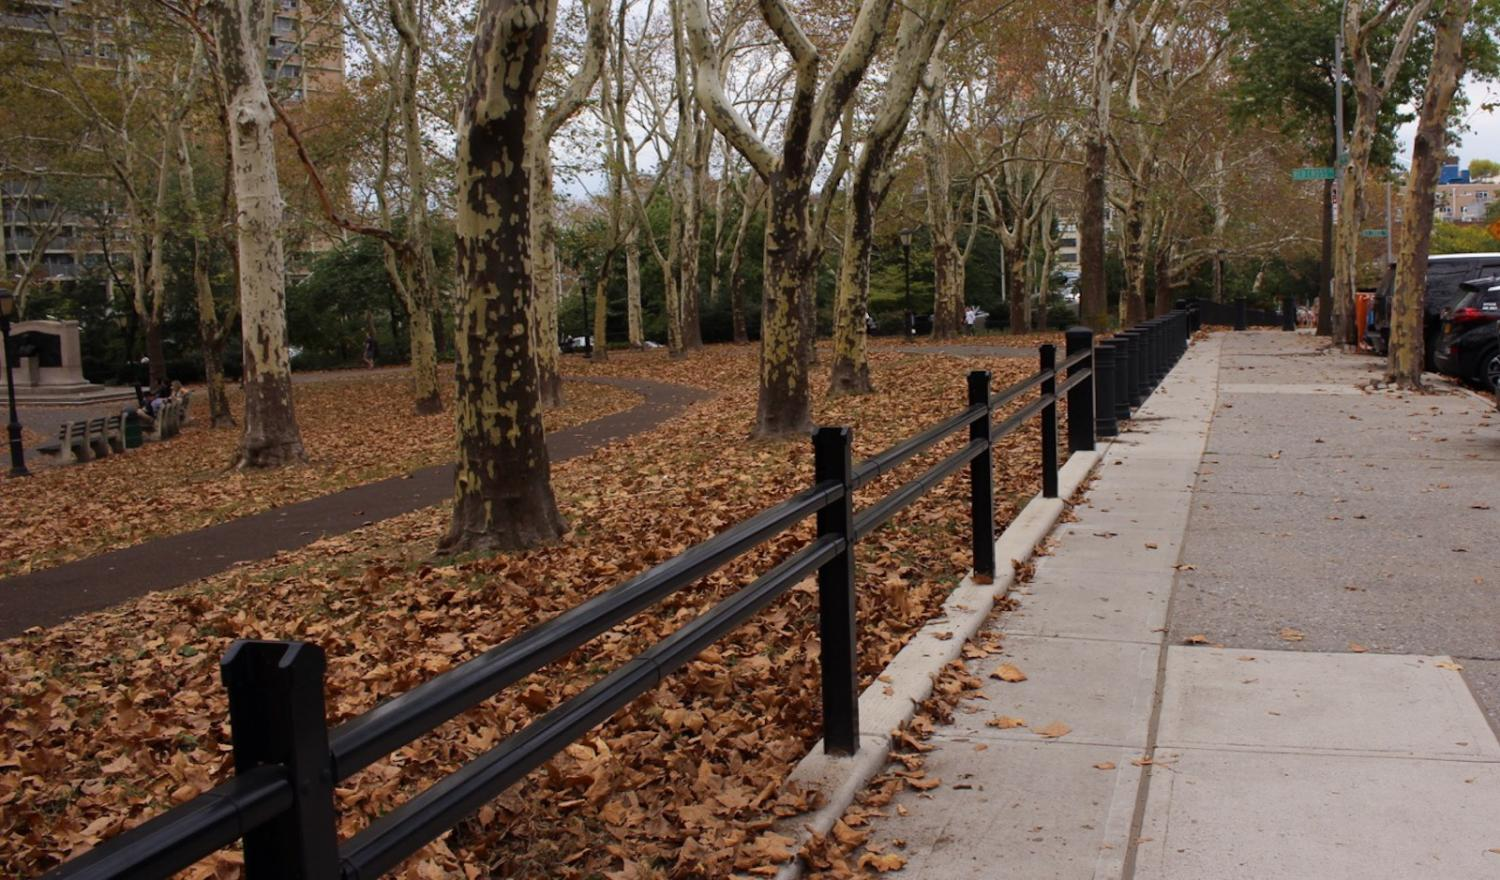 Its fall again, and that means pumpkins. Find pumpkin spice in the air, or real one in Central Park.